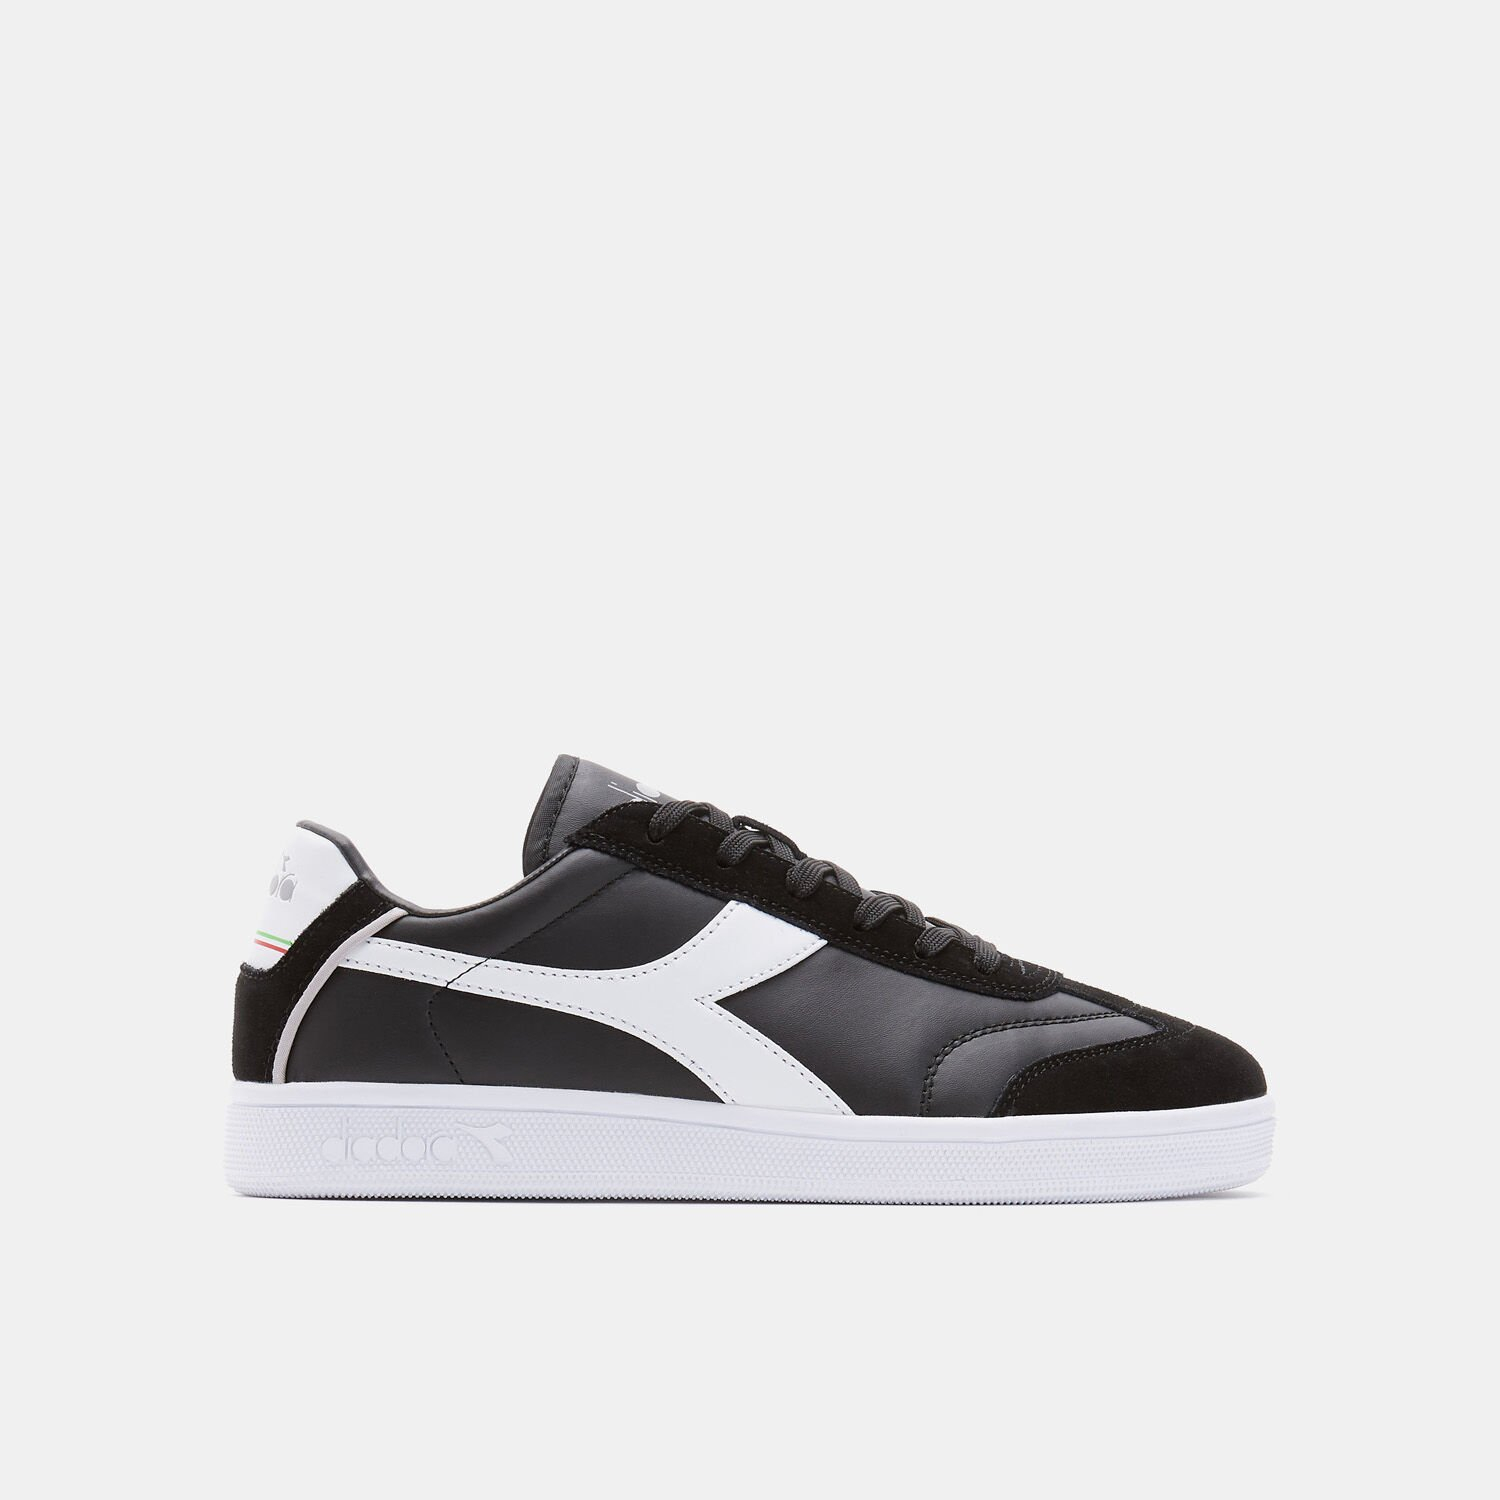 Diadora kick black